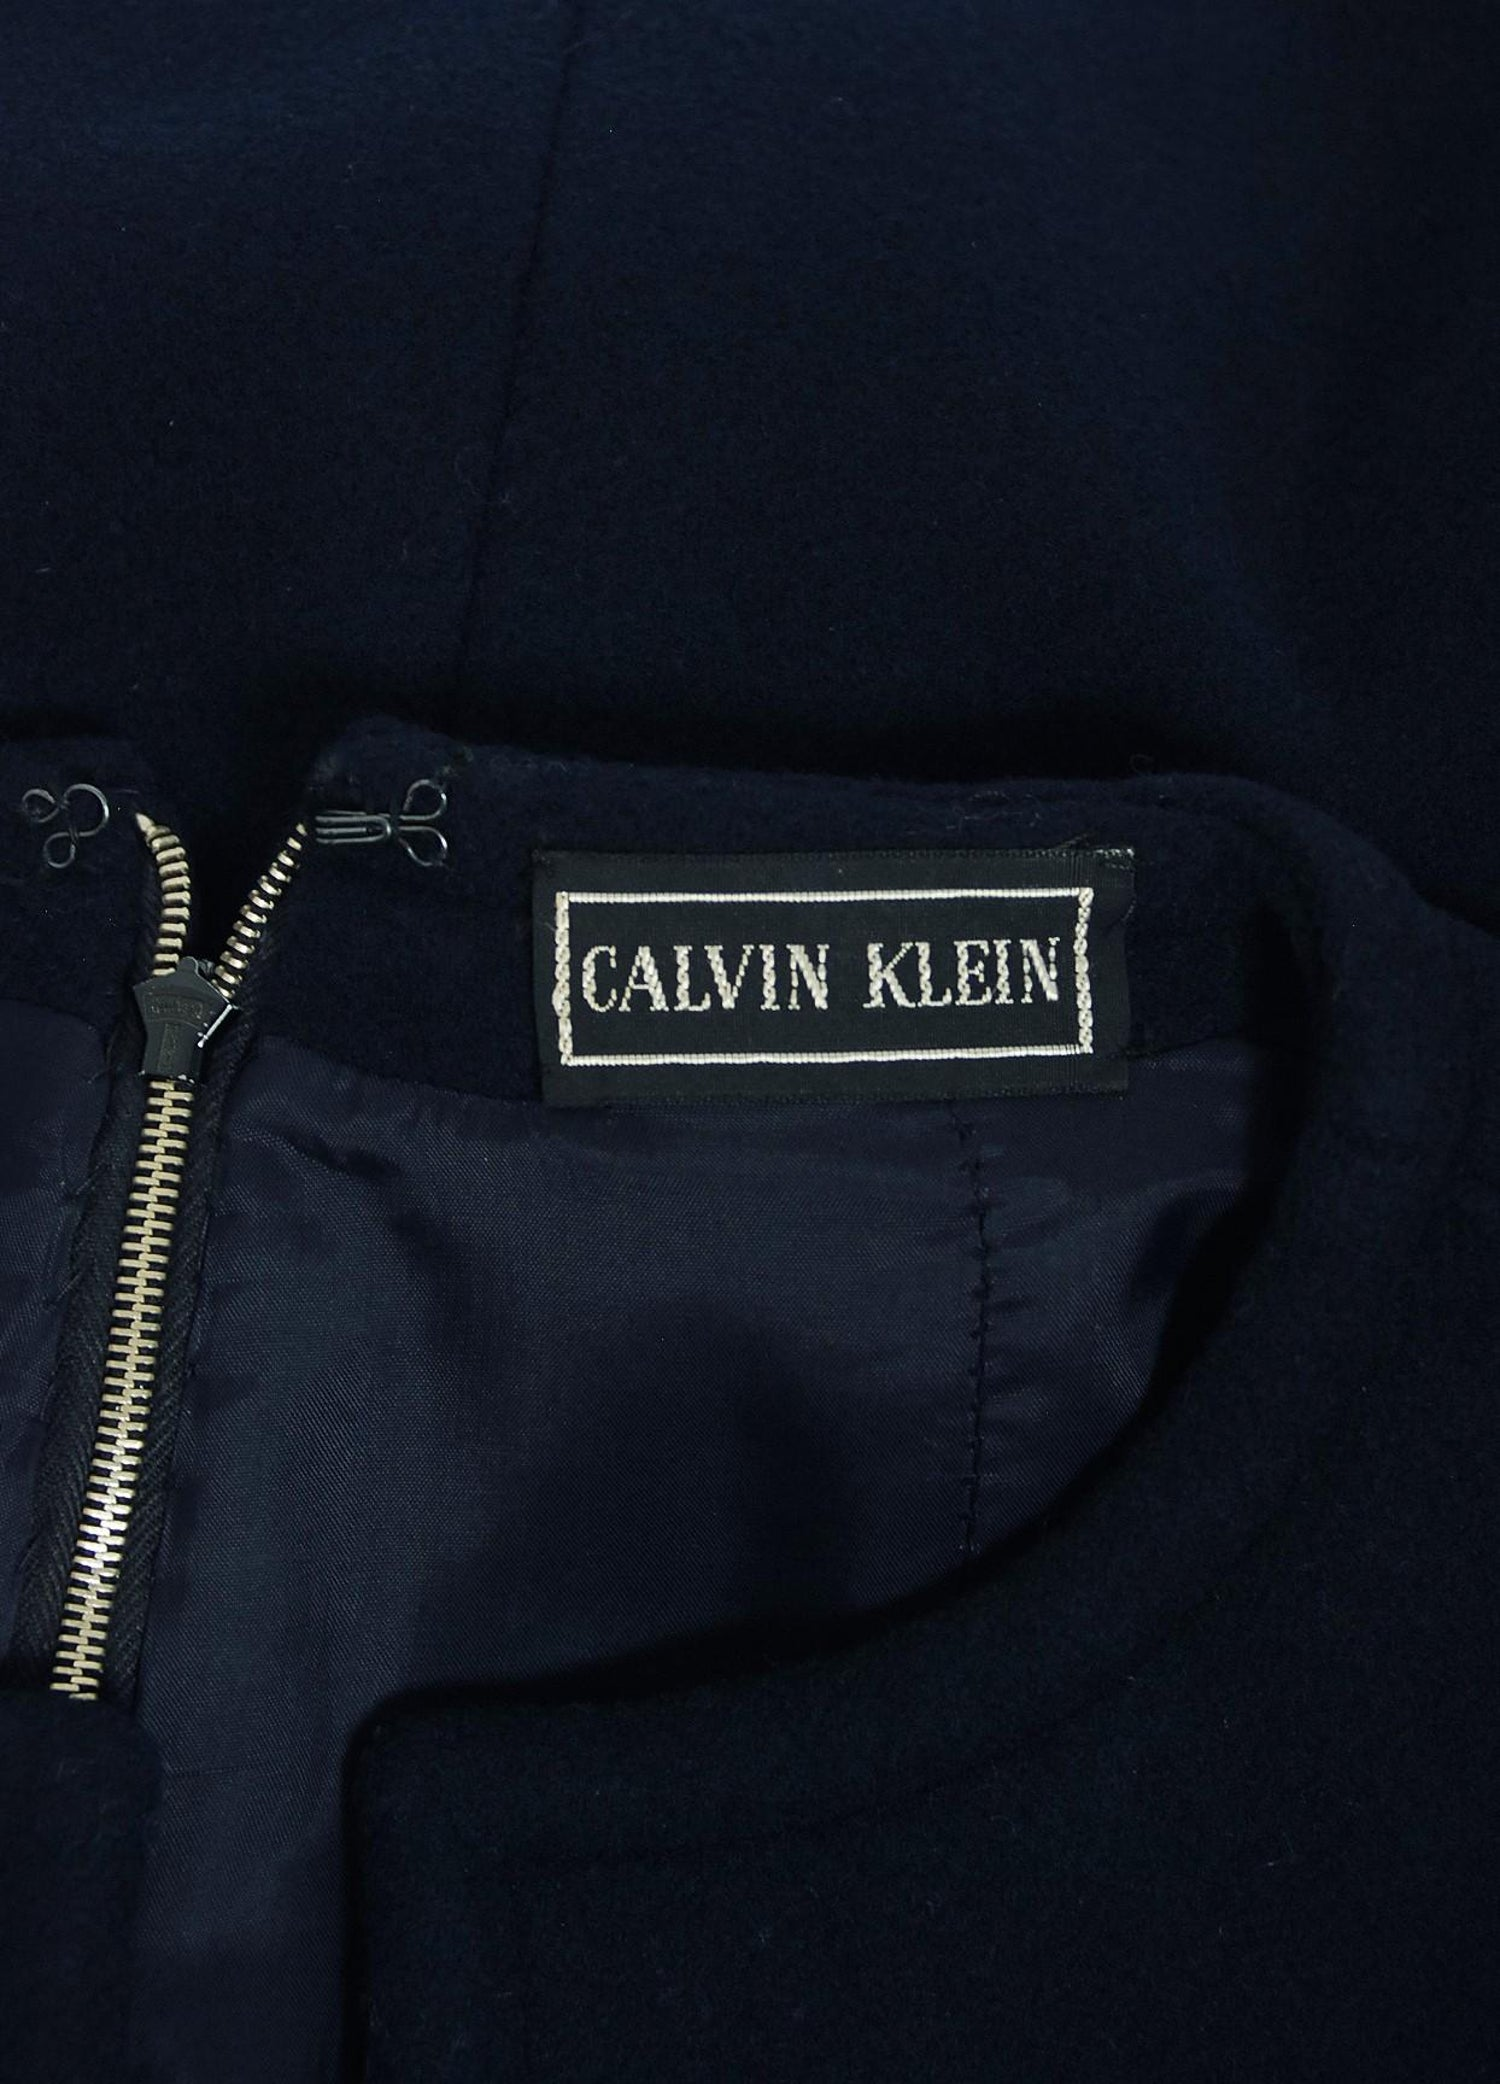 72418ea5e8033 1968 Calvin Klein Navy-Blue Wool Mod Pockets Sleeveless Tunic and Pants  Ensemble For Sale at 1stdibs